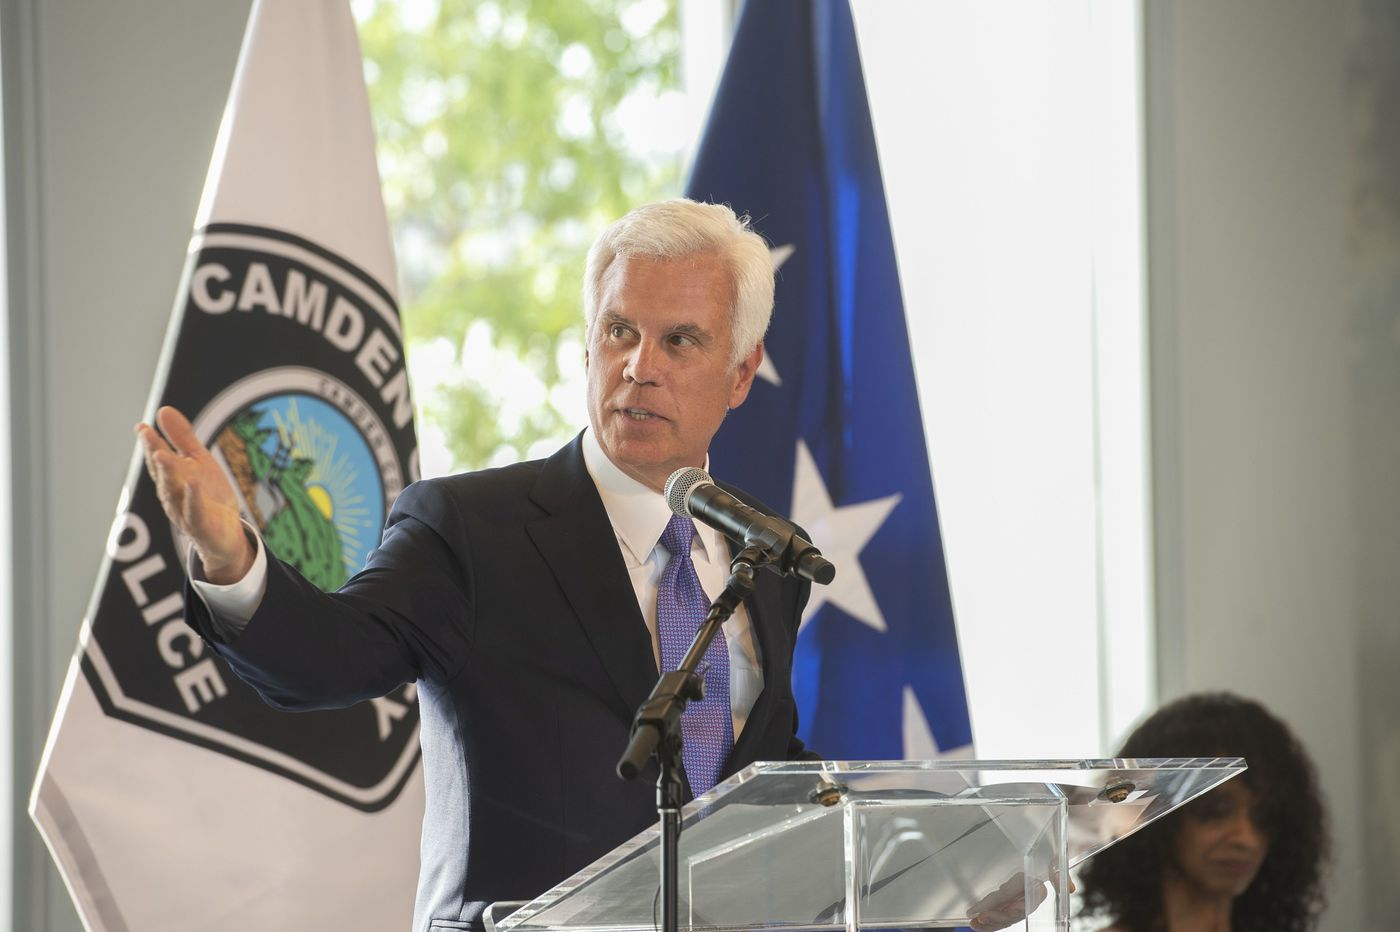 George Norcross sues Gov. Murphy and tax incentive investigators